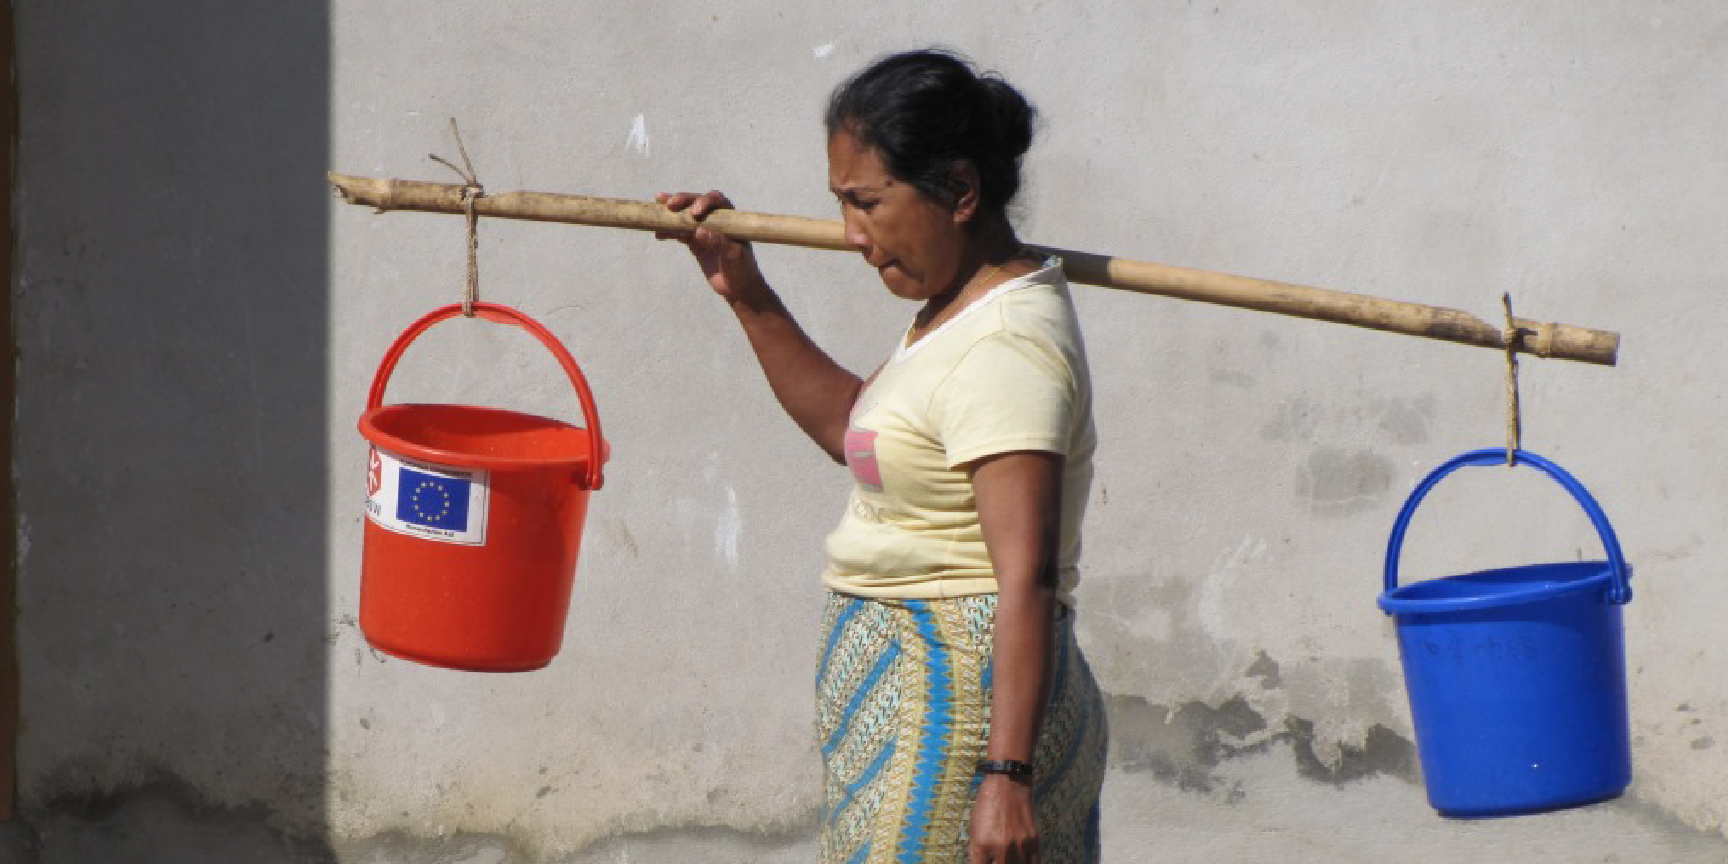 A woman carrying buckets on a pole